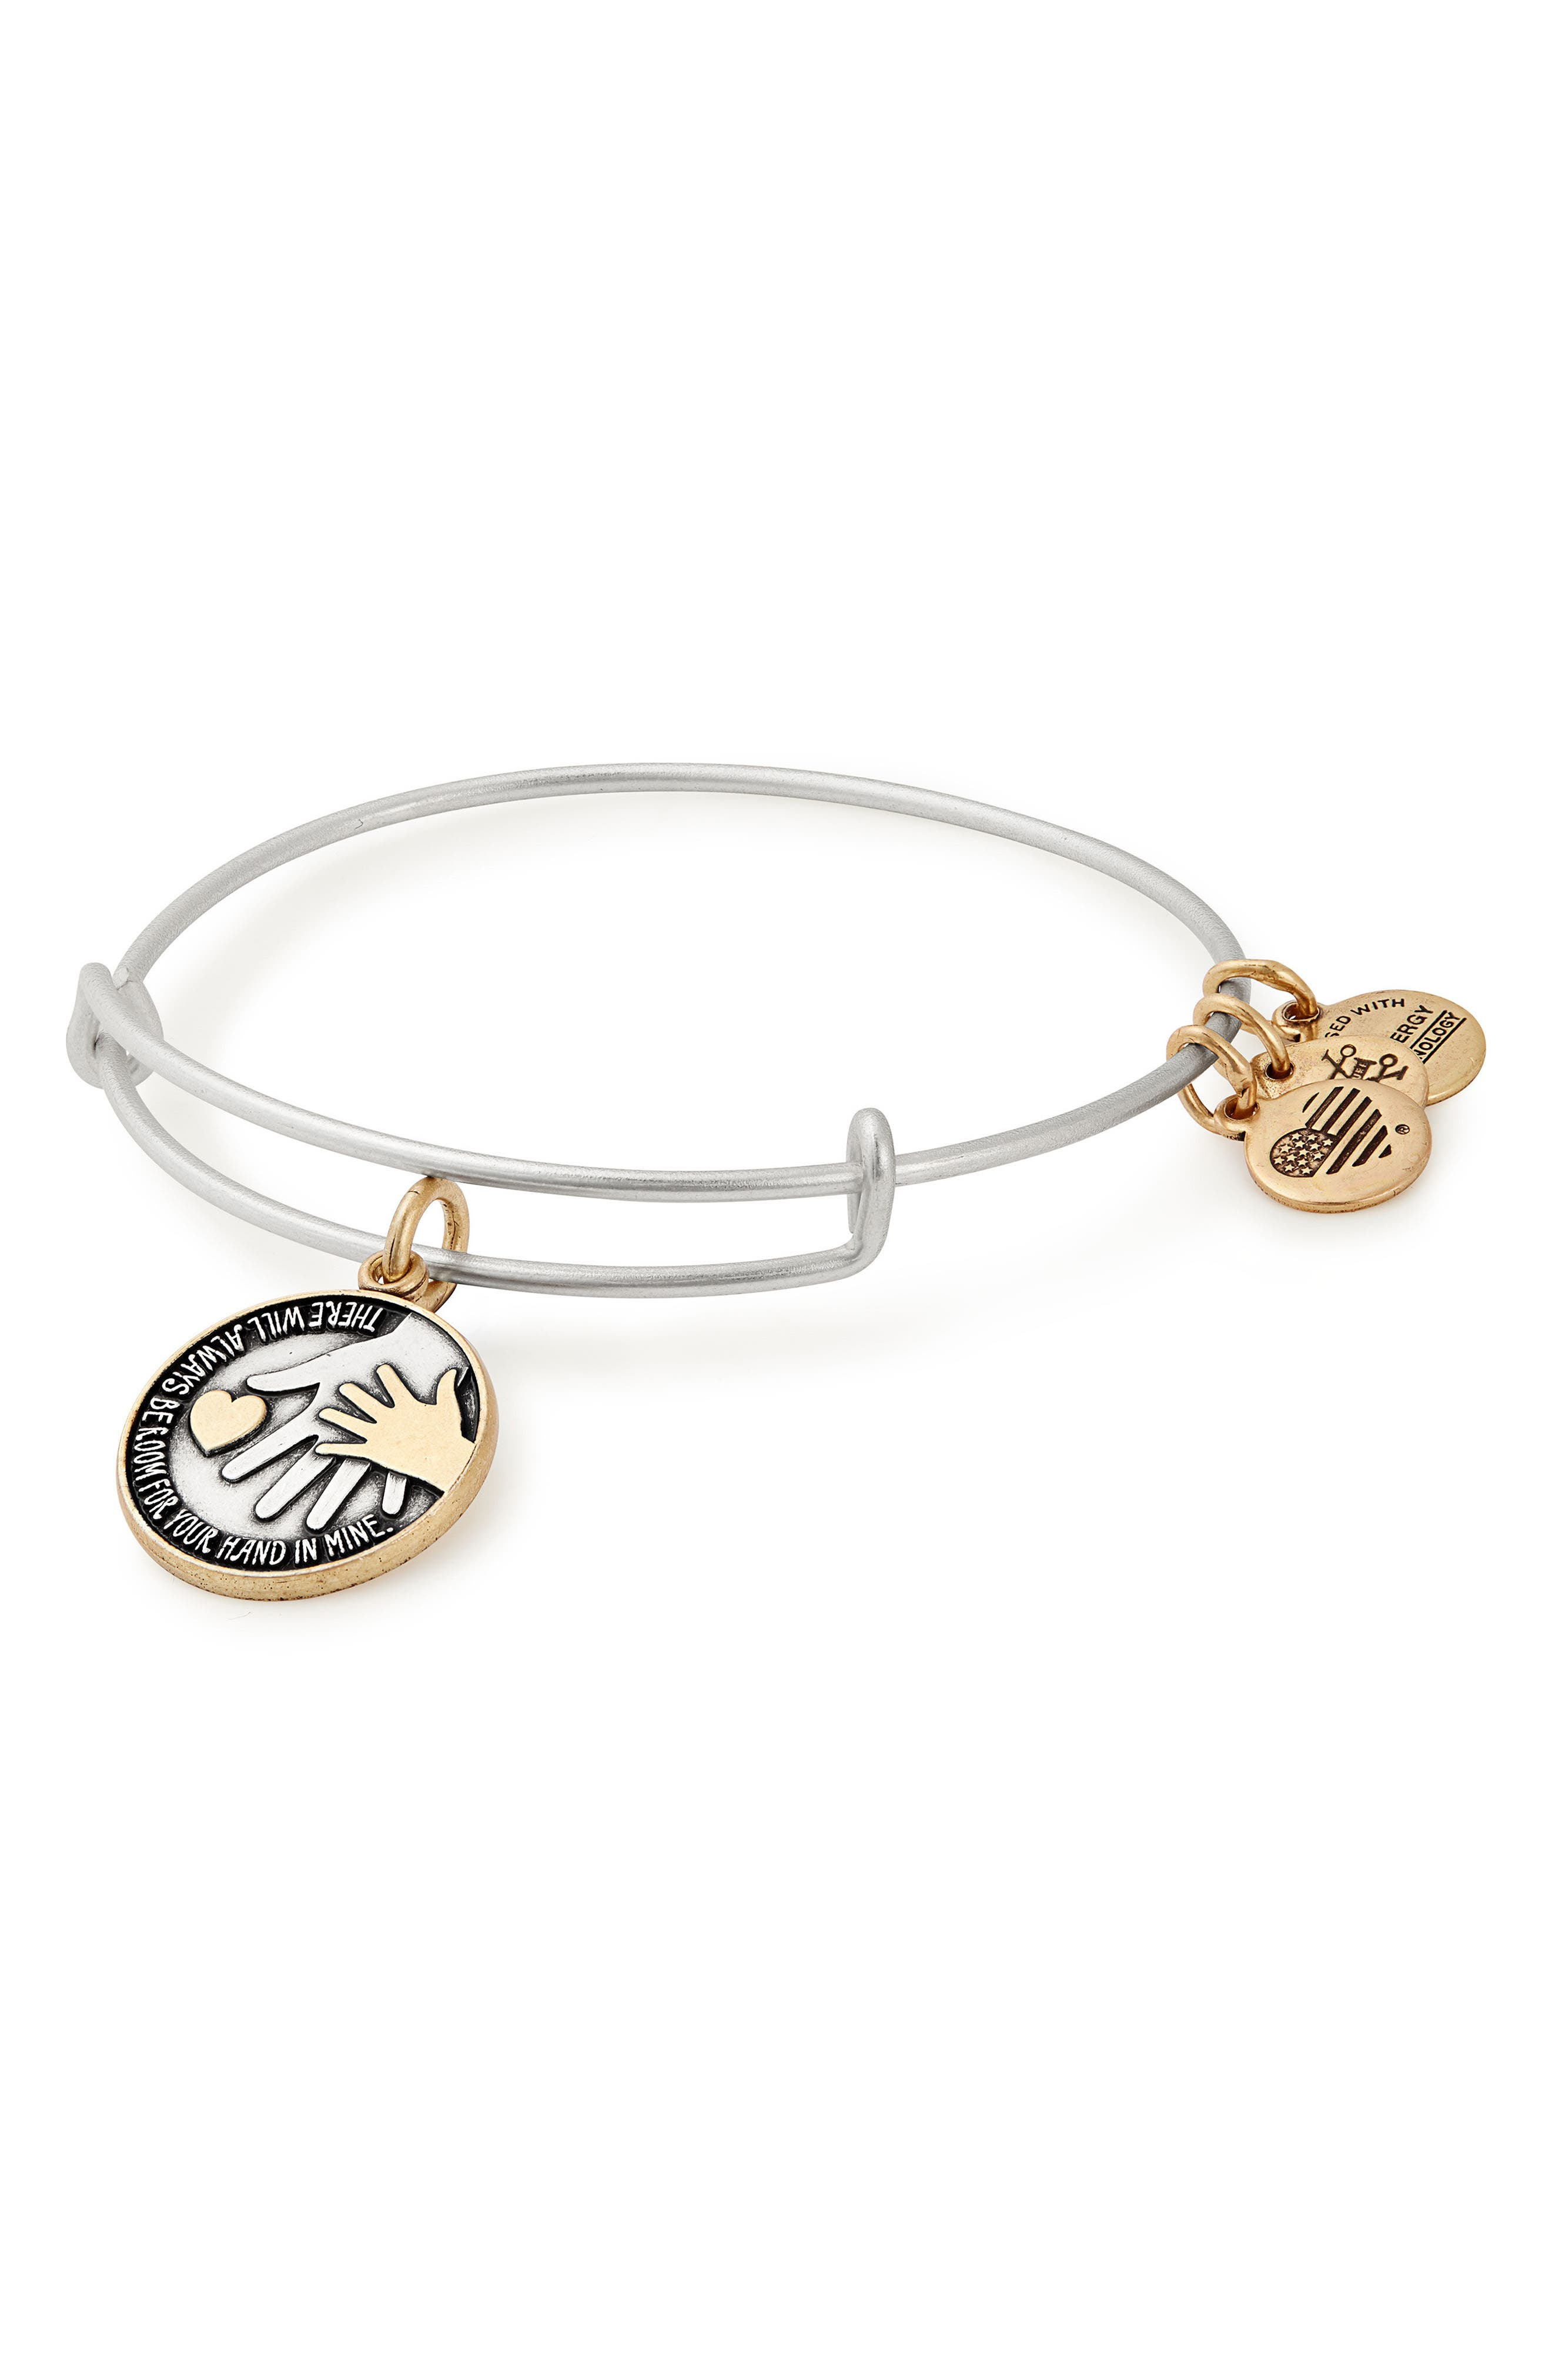 Hand in Hand Two-Tone Adjustable Bracelet,                             Main thumbnail 1, color,                             Silver